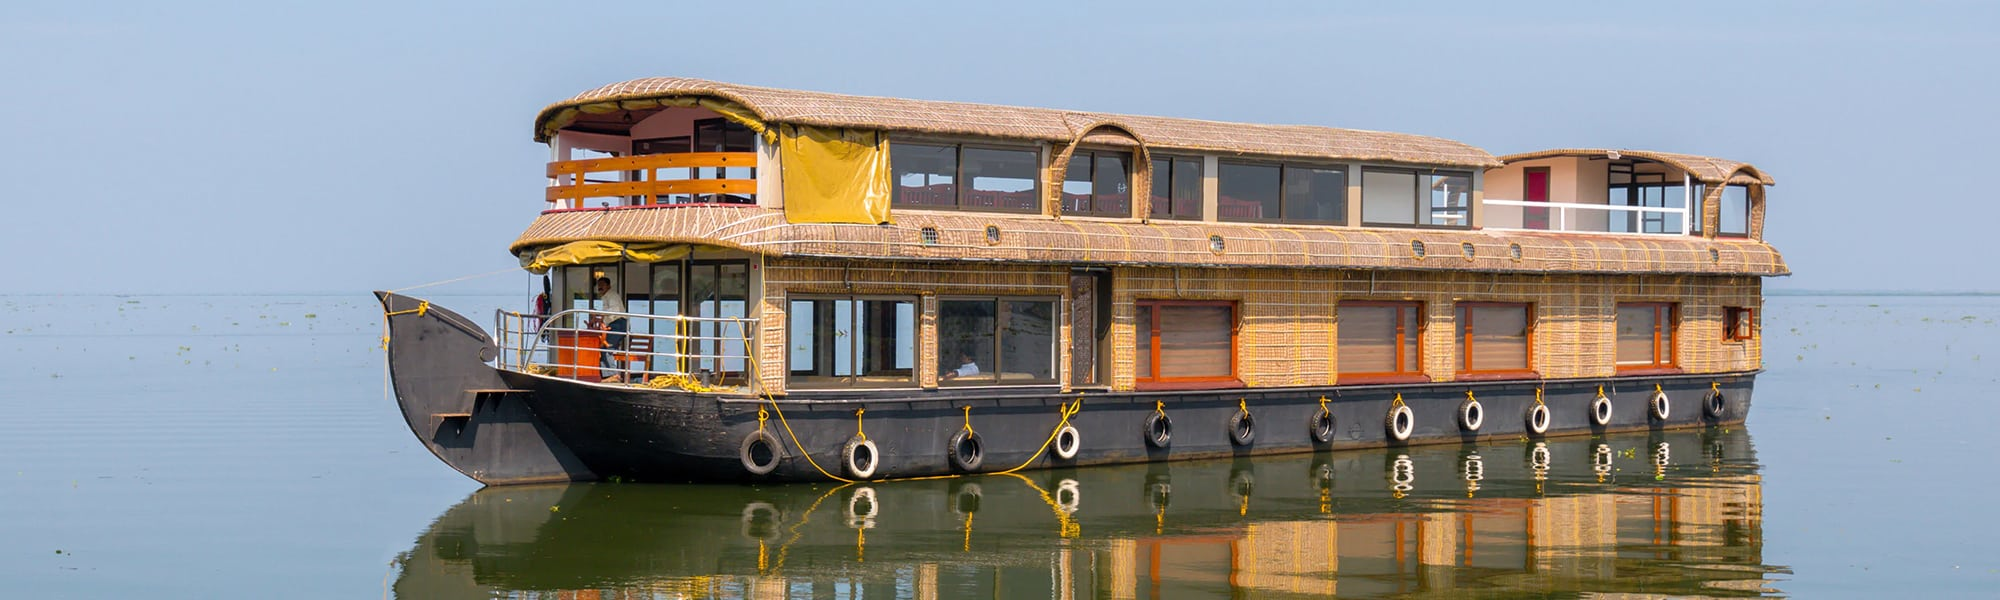 House Boats & Backwater Tourism In Kerala